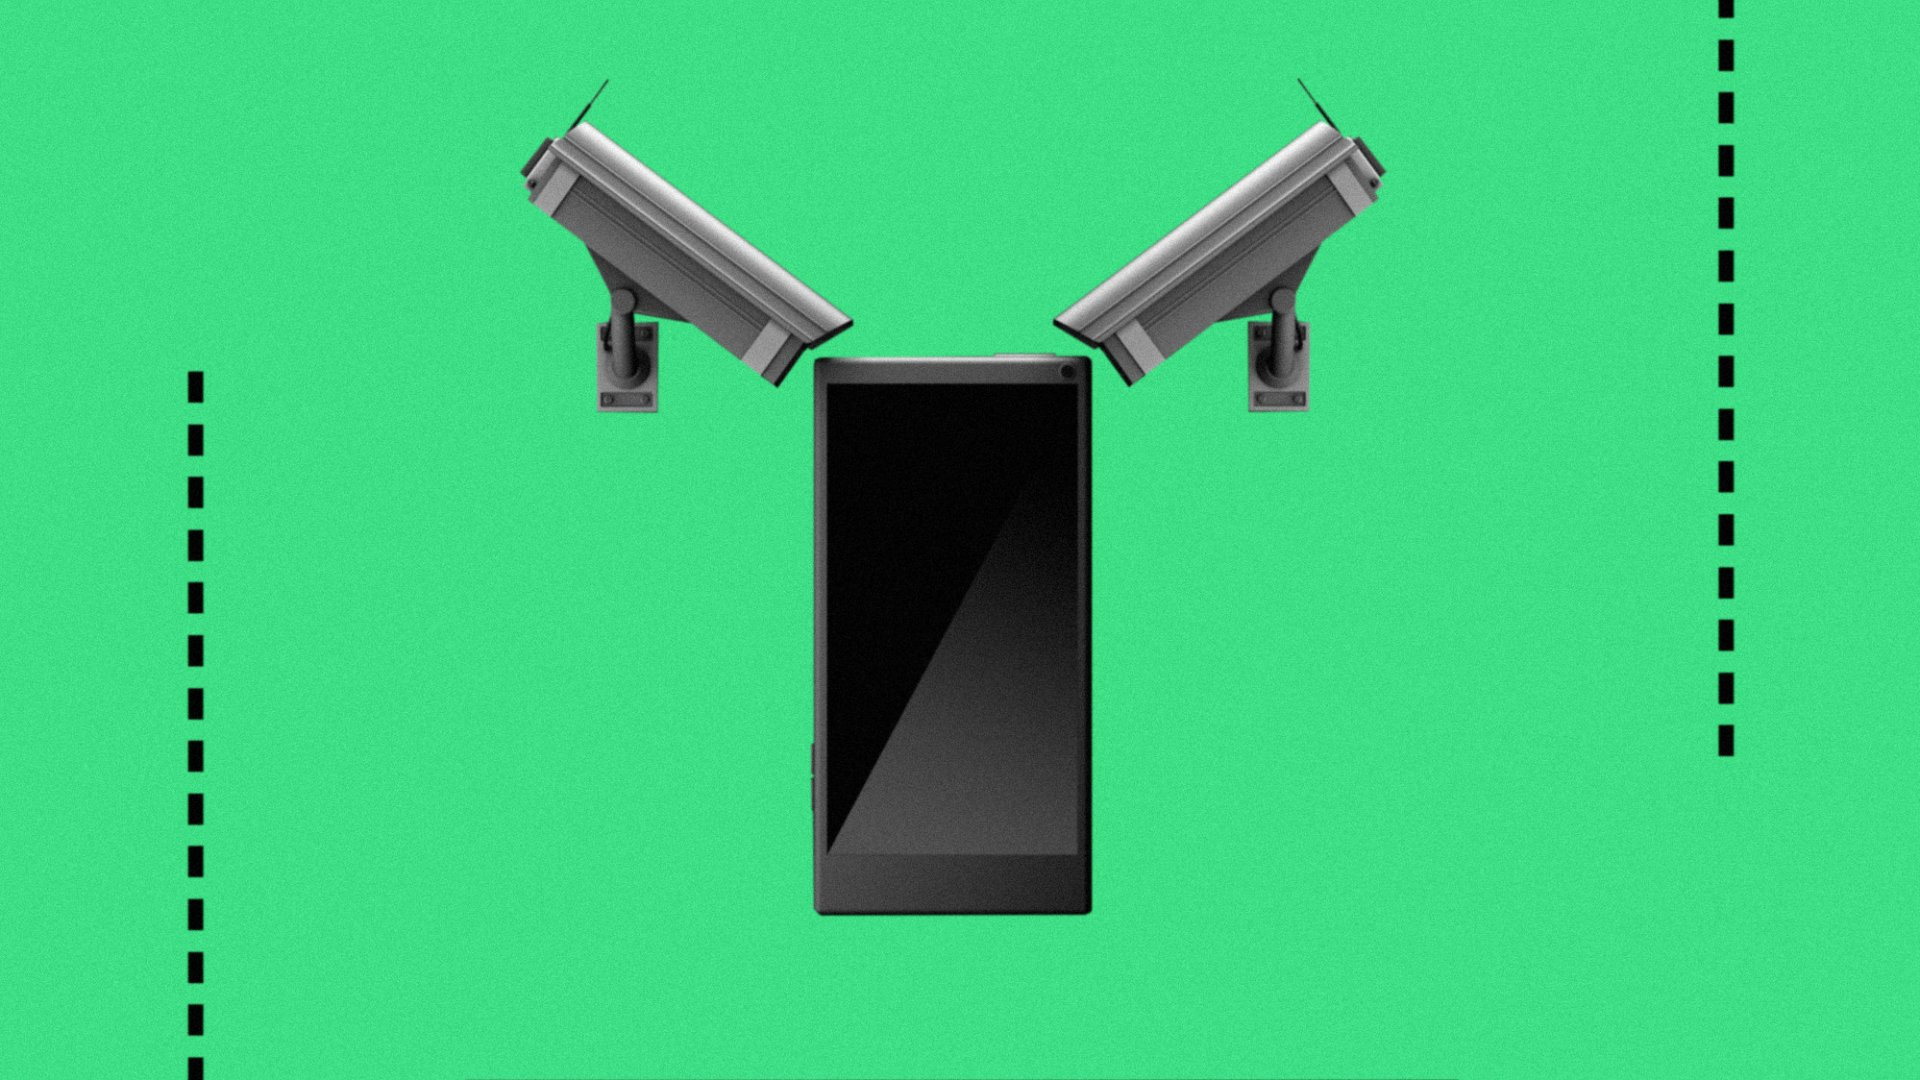 Android Phones Have a Major Flaw That Could Allow Them to Spy on You